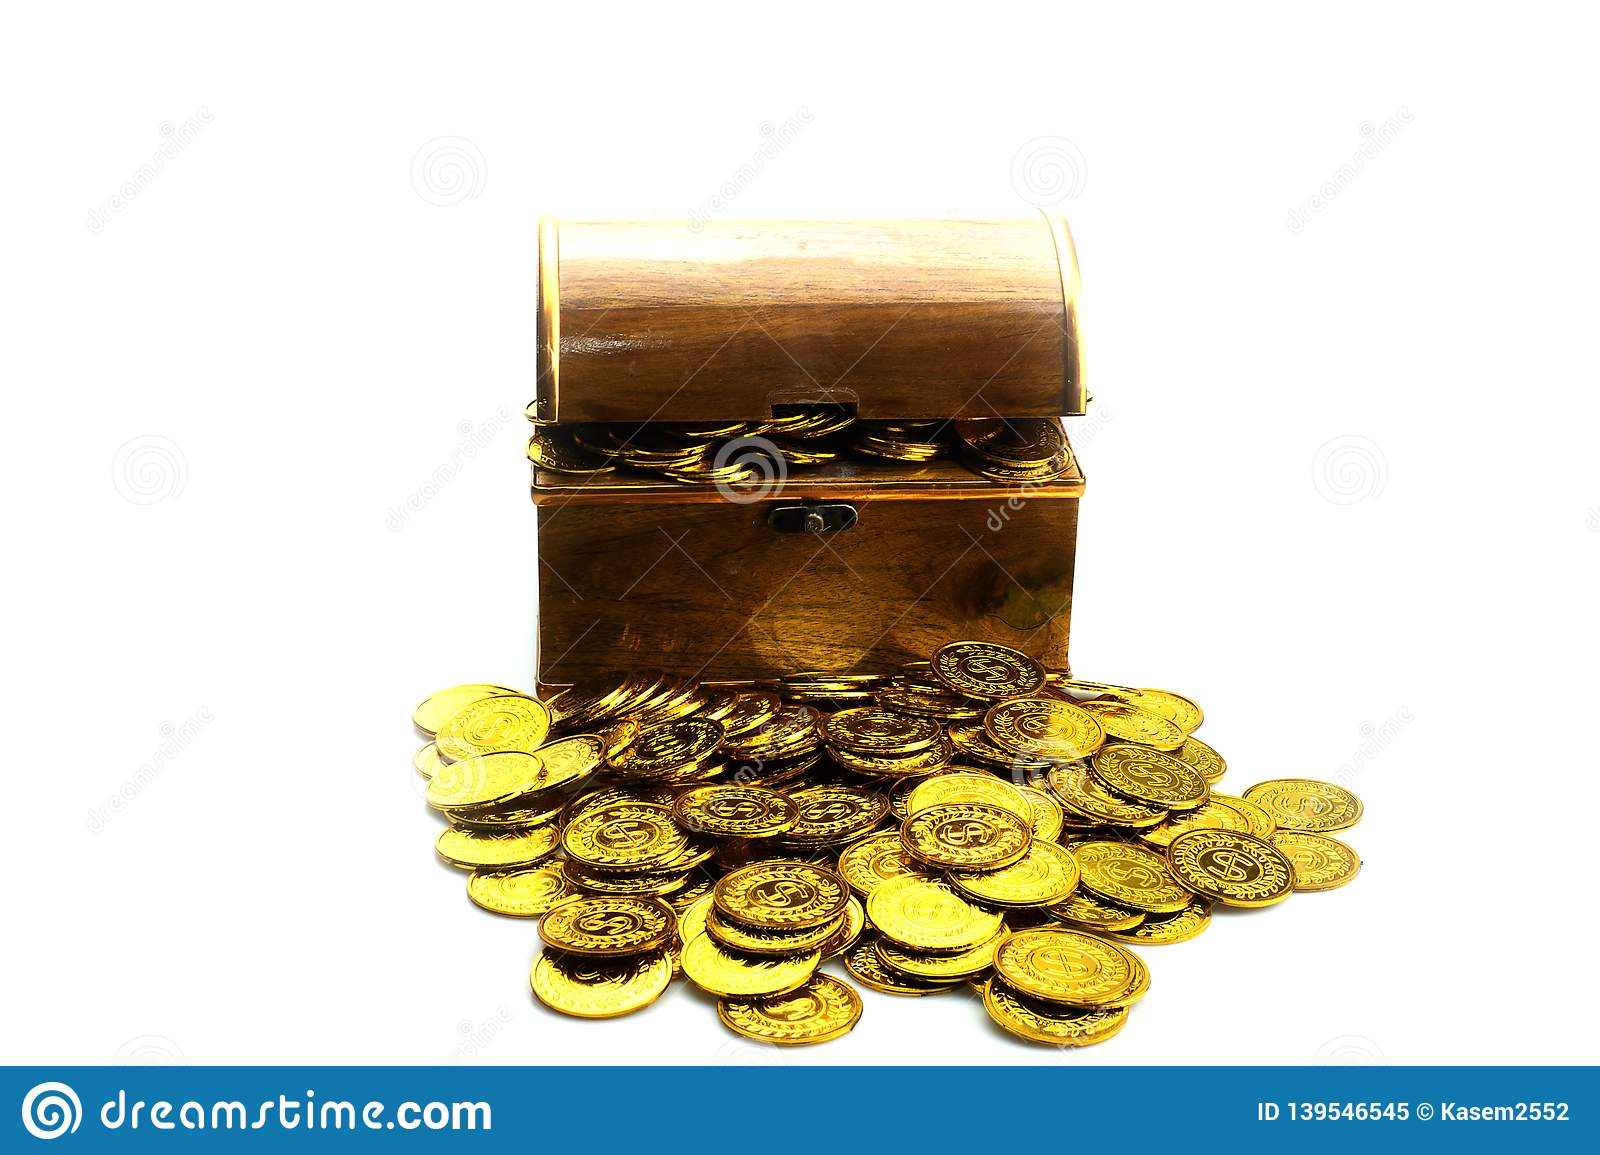 Gold Coin in treasure chest on white background